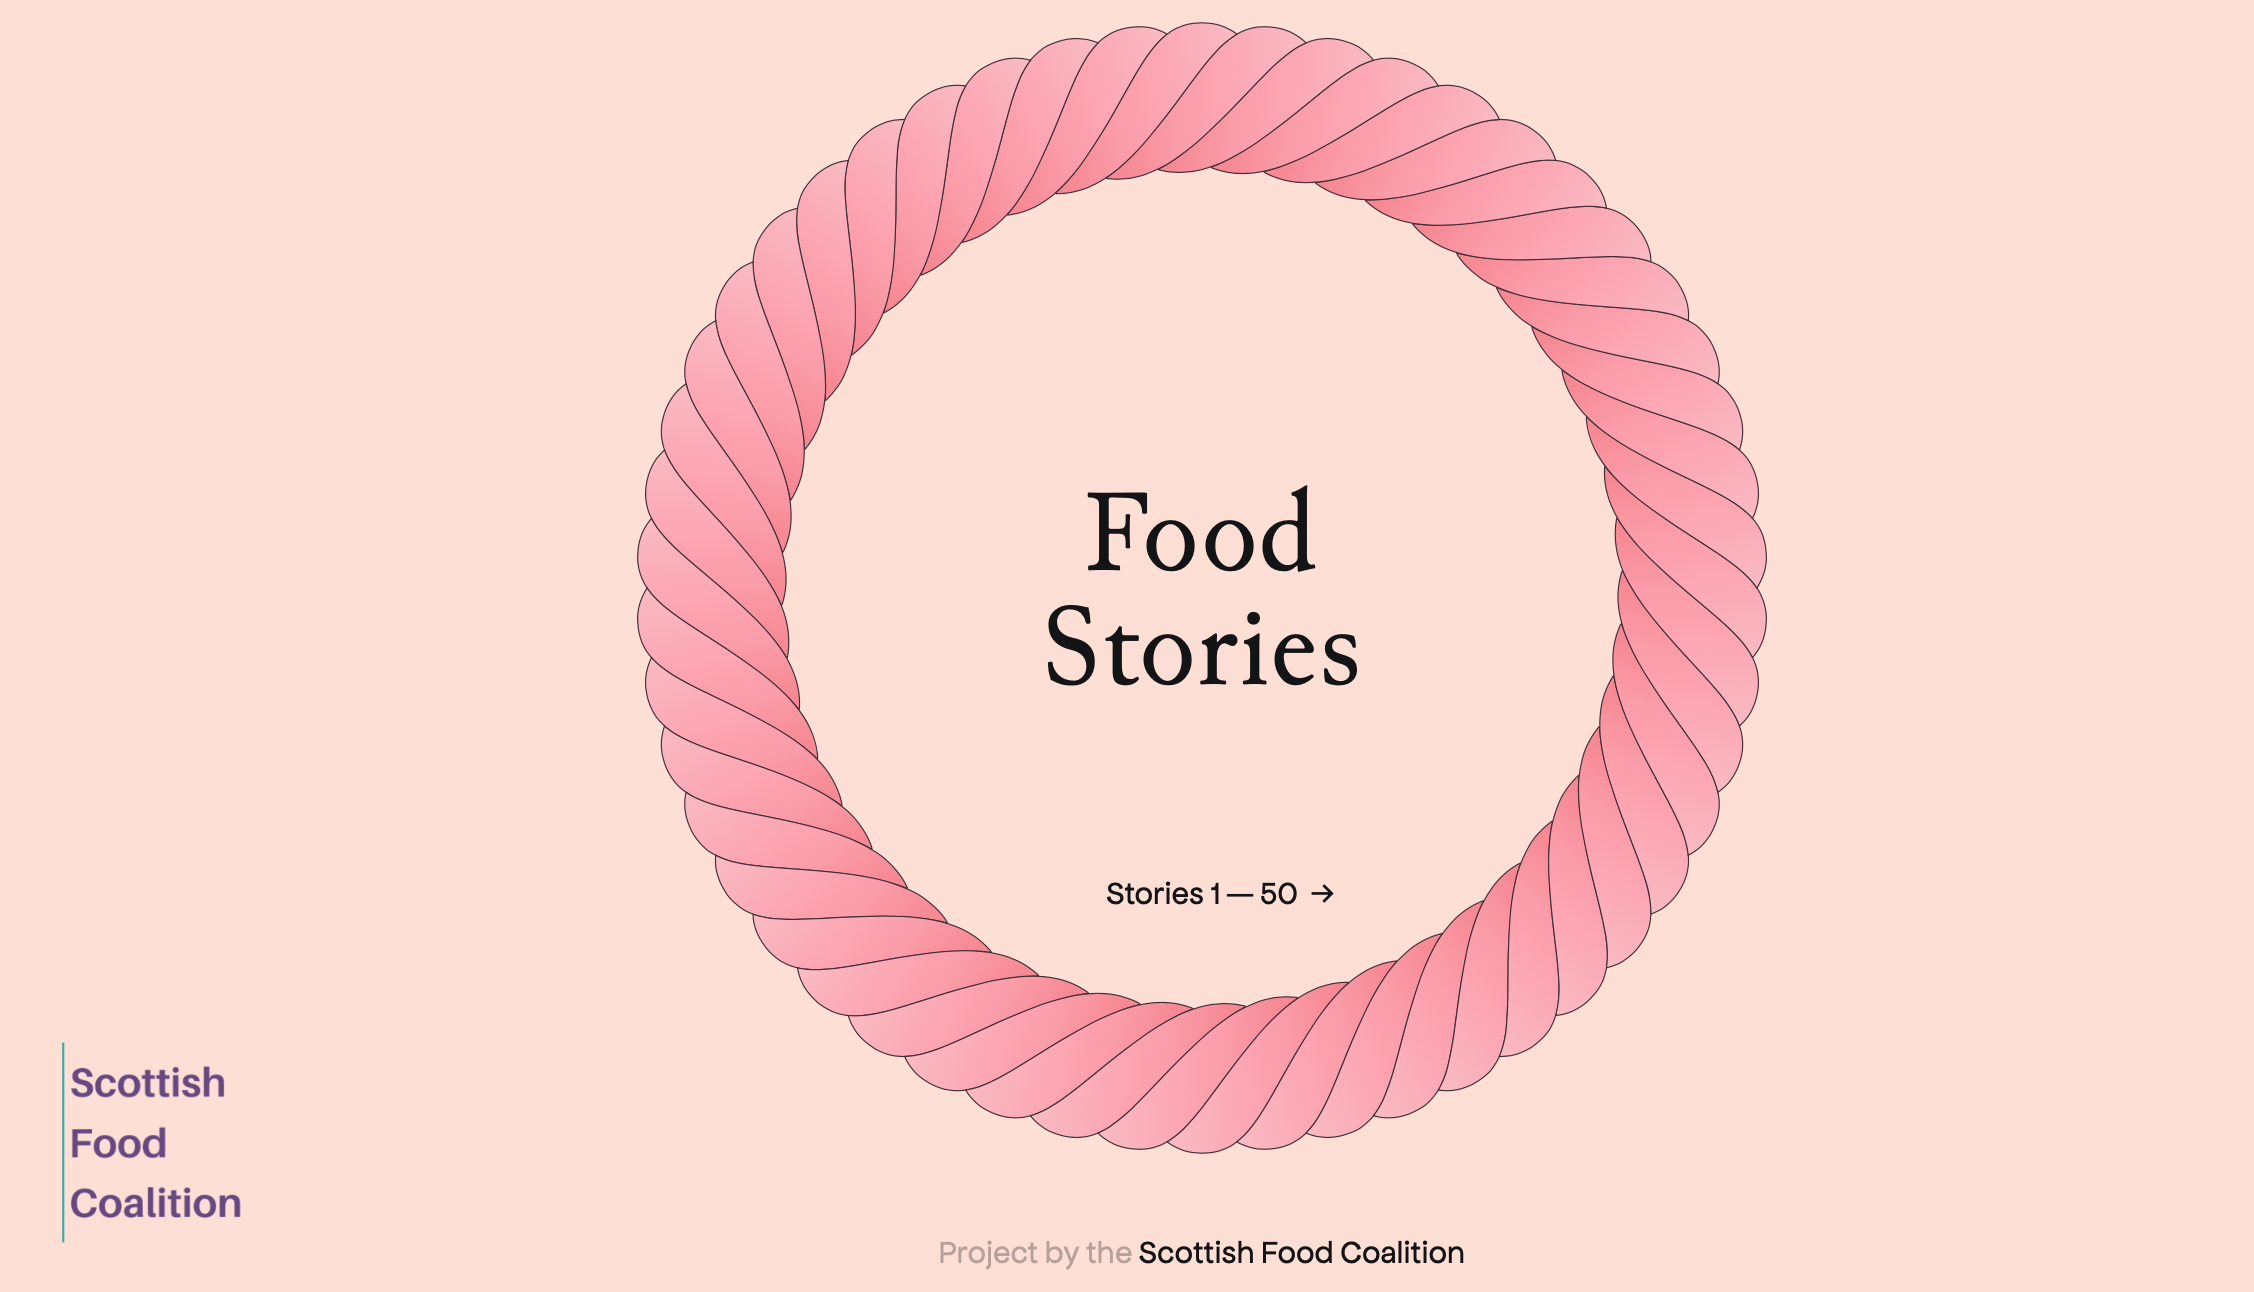 Food Stories: Project by the Scottish Food Coalition